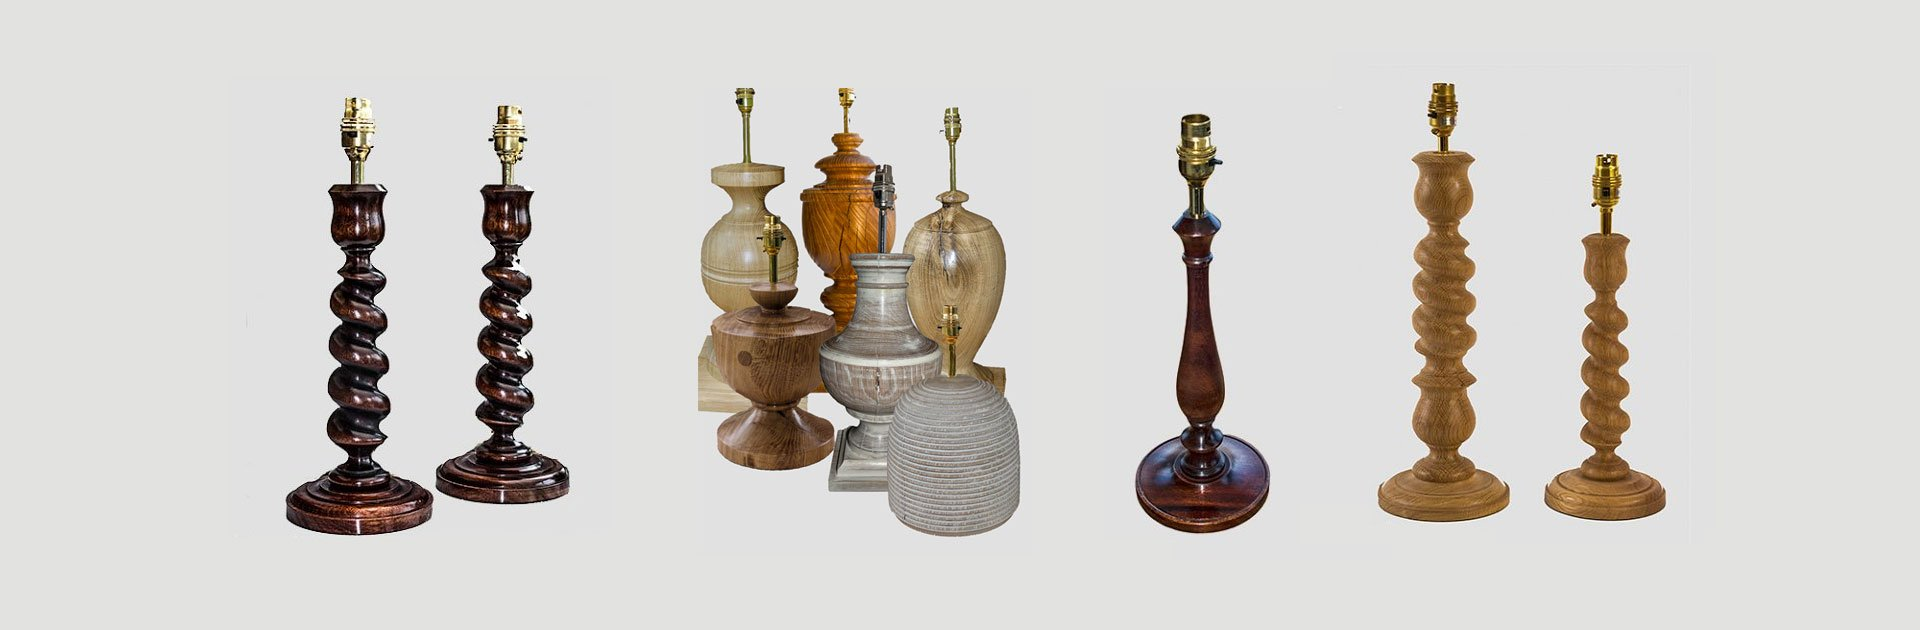 Different types of oak lamps